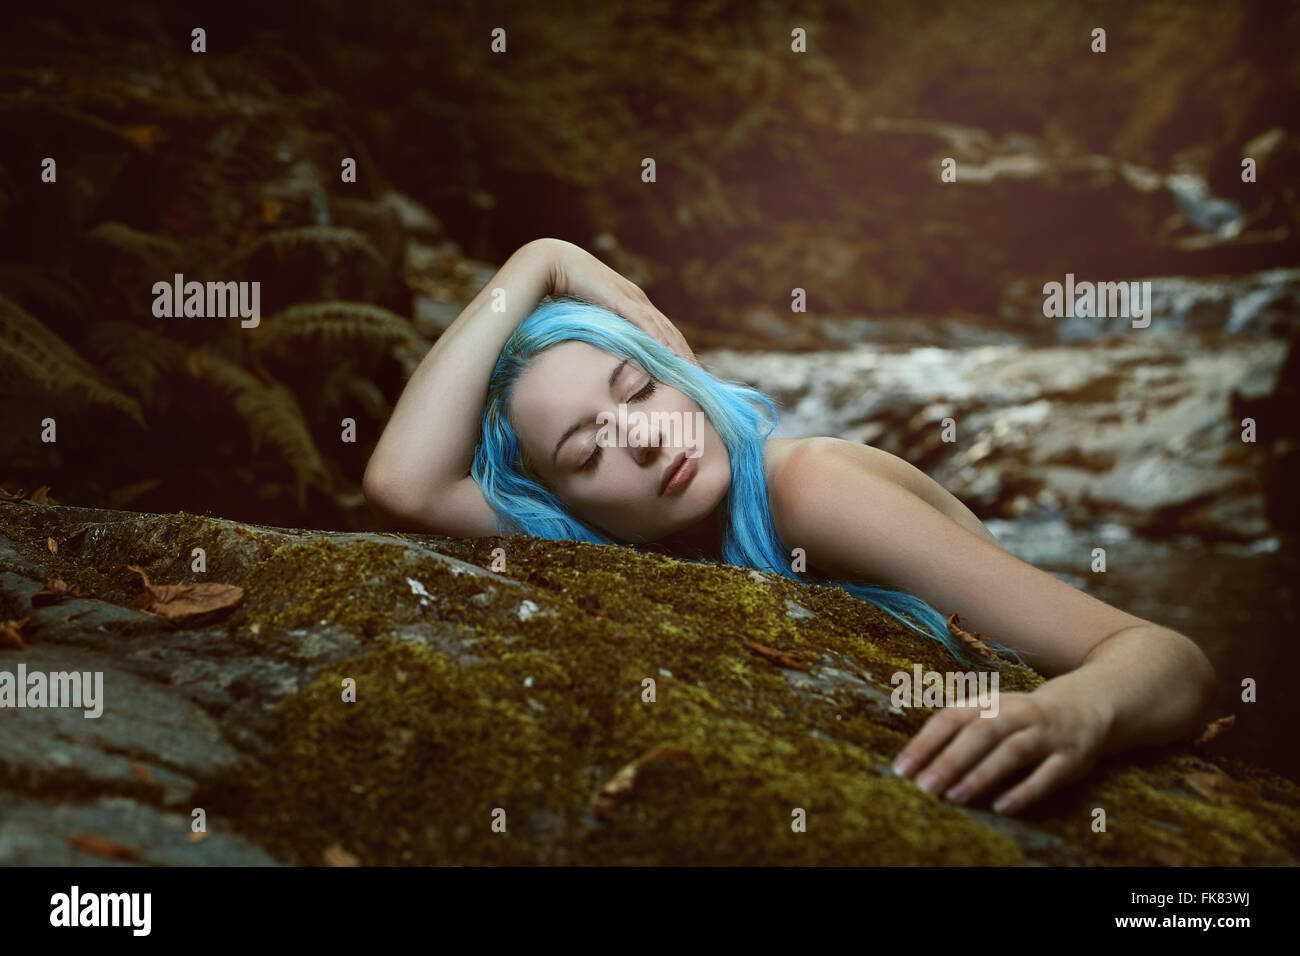 Forest dryad sleeping peacefully in the wood. Romance and fantasy - Stock Image